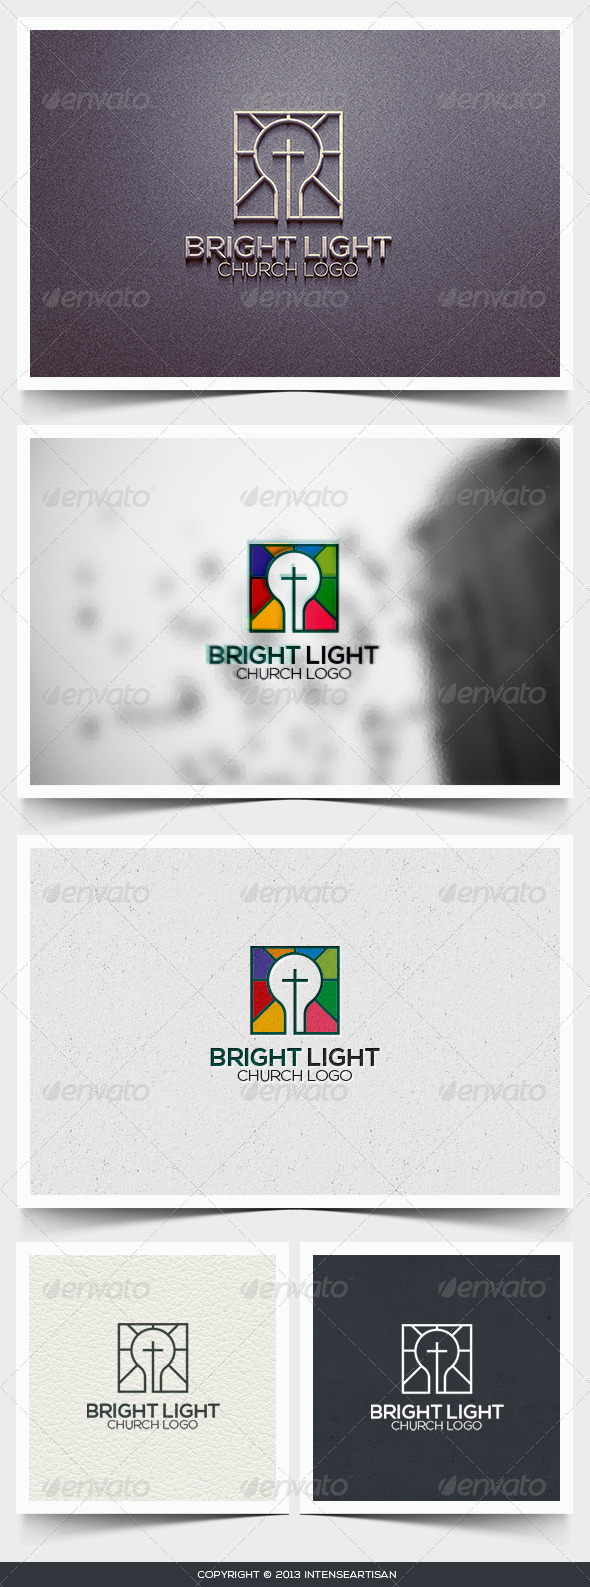 Bright Light Logo Template - Objects Logo Templates